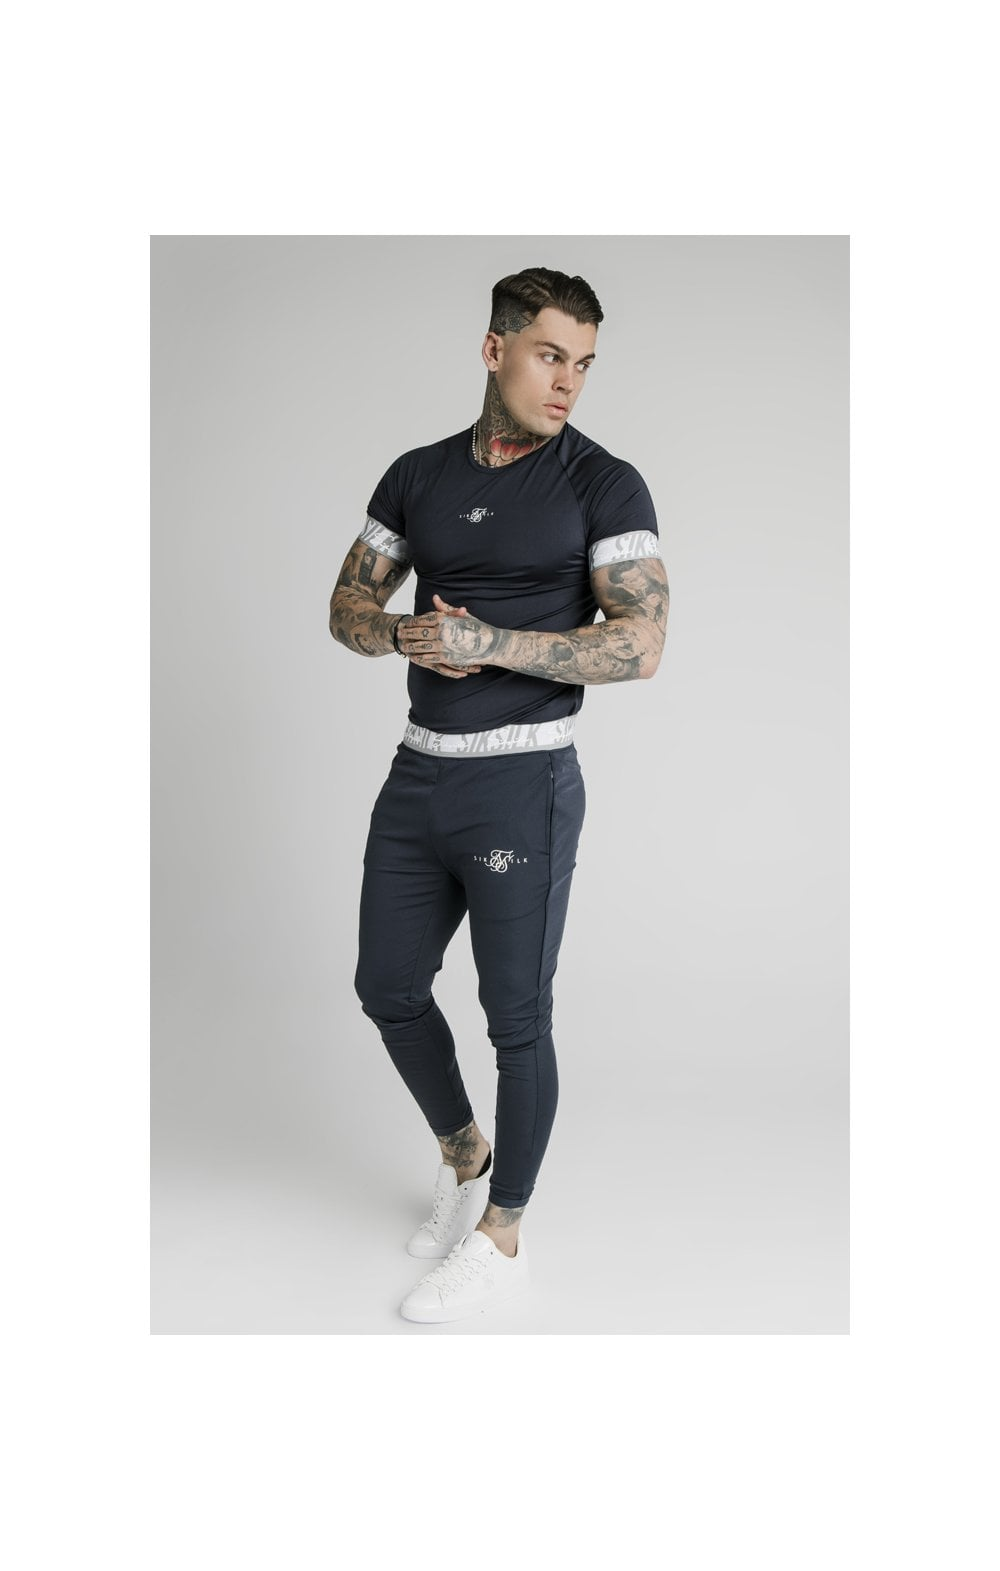 SikSilk S/S Scope Tape Tech Tee – Navy (4)